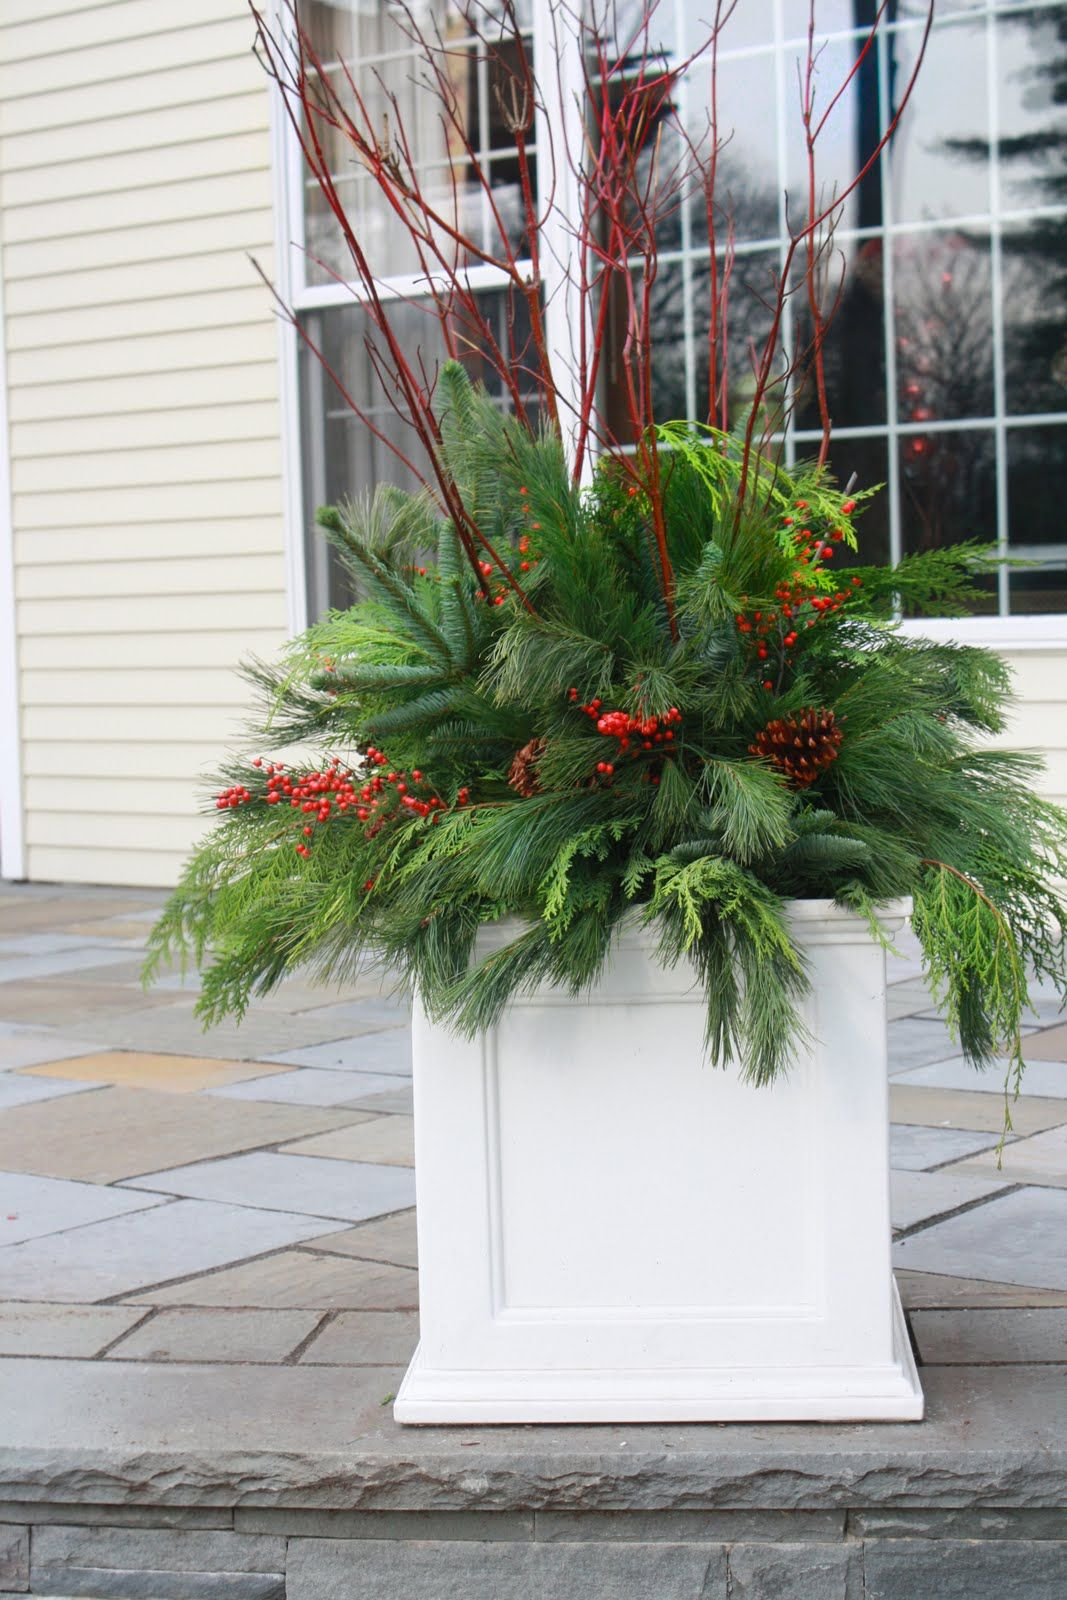 Totally doing this in my window boxes this year!